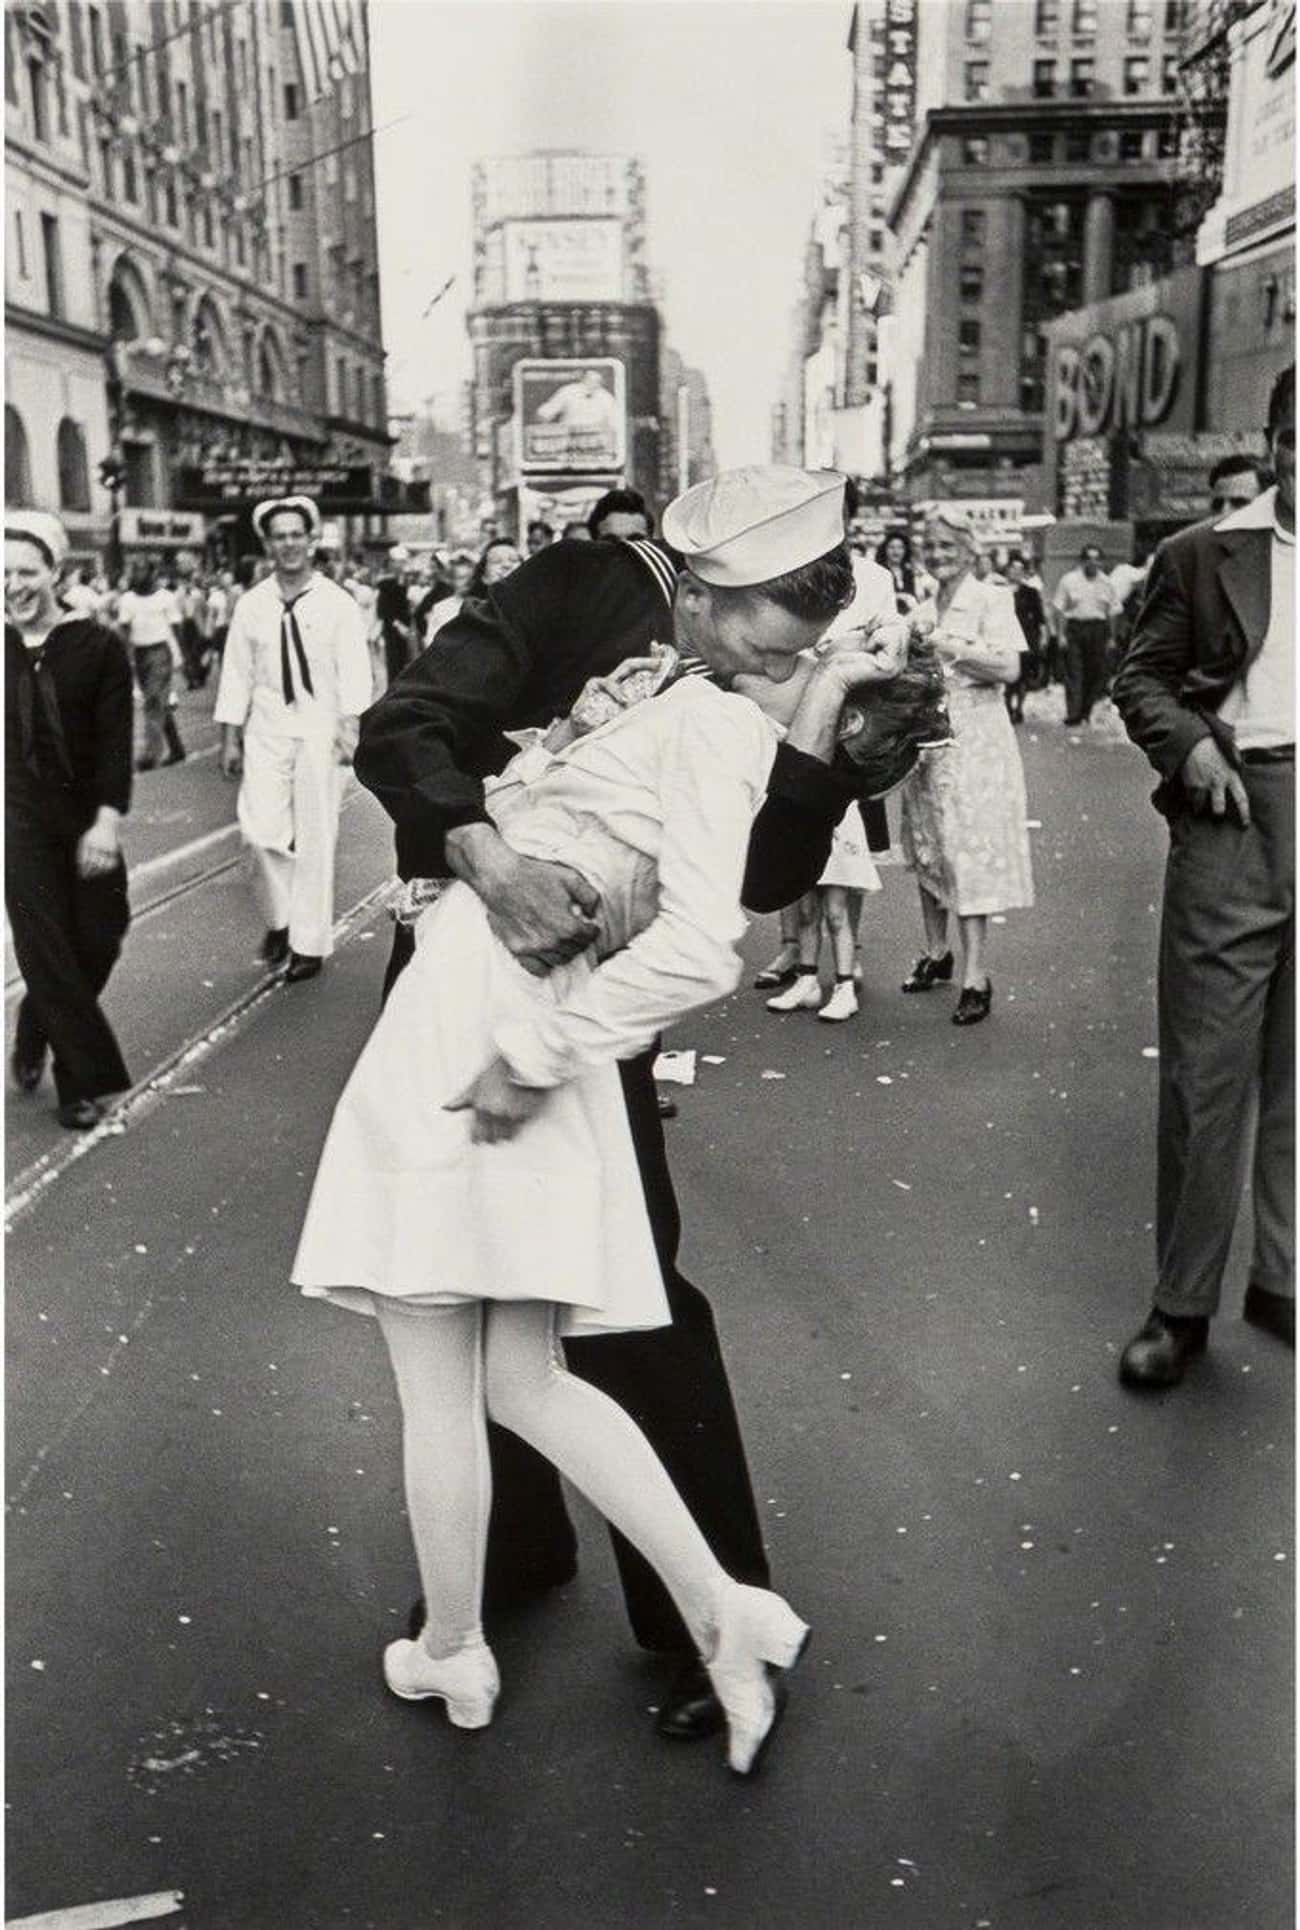 Sailor Kissing Nurse is listed (or ranked) 3 on the list The Most Iconic and Influential Works of Art